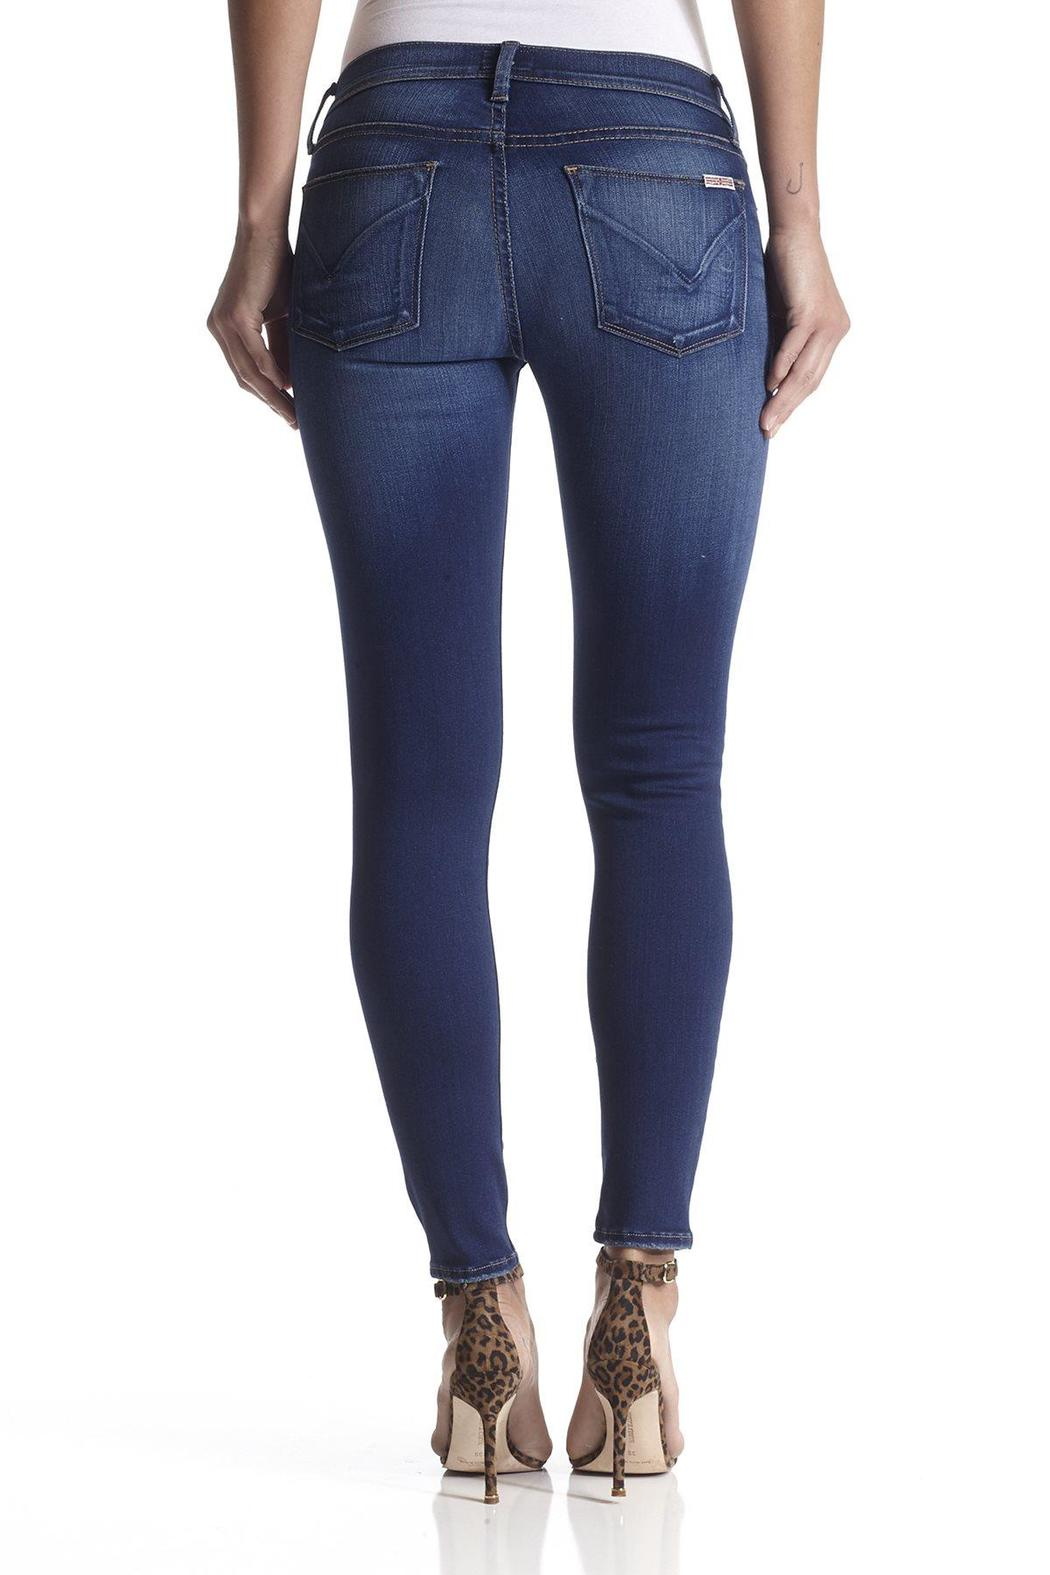 0c2b42d88b2 Hudson Jeans Krista Ankle-Skinny Fortress from North Shore by Assets ...